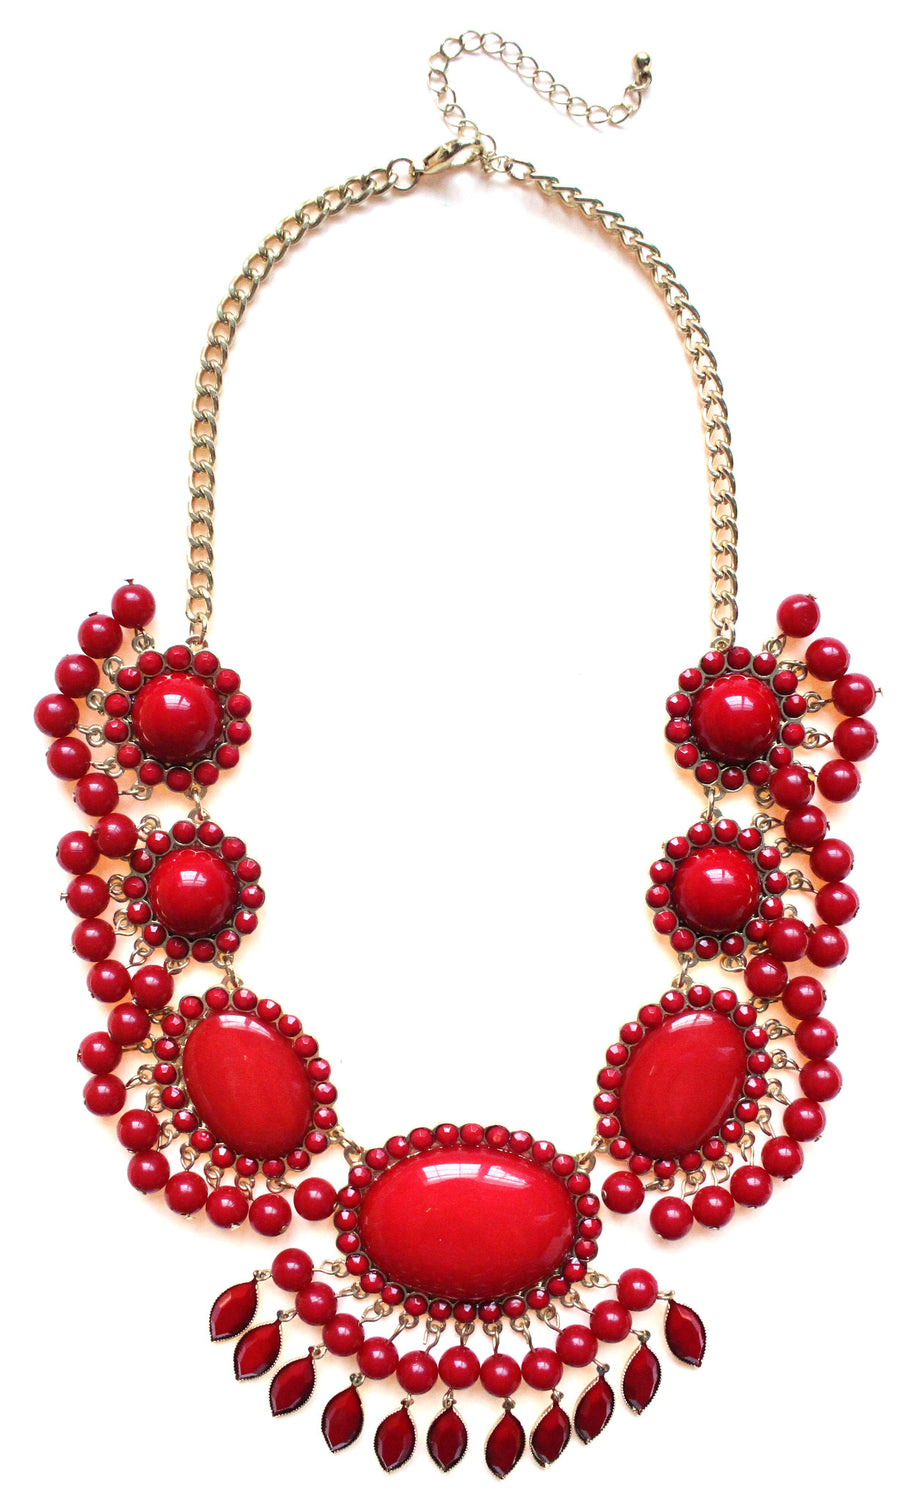 Bauble Fan Fringe Statement Necklace- Red